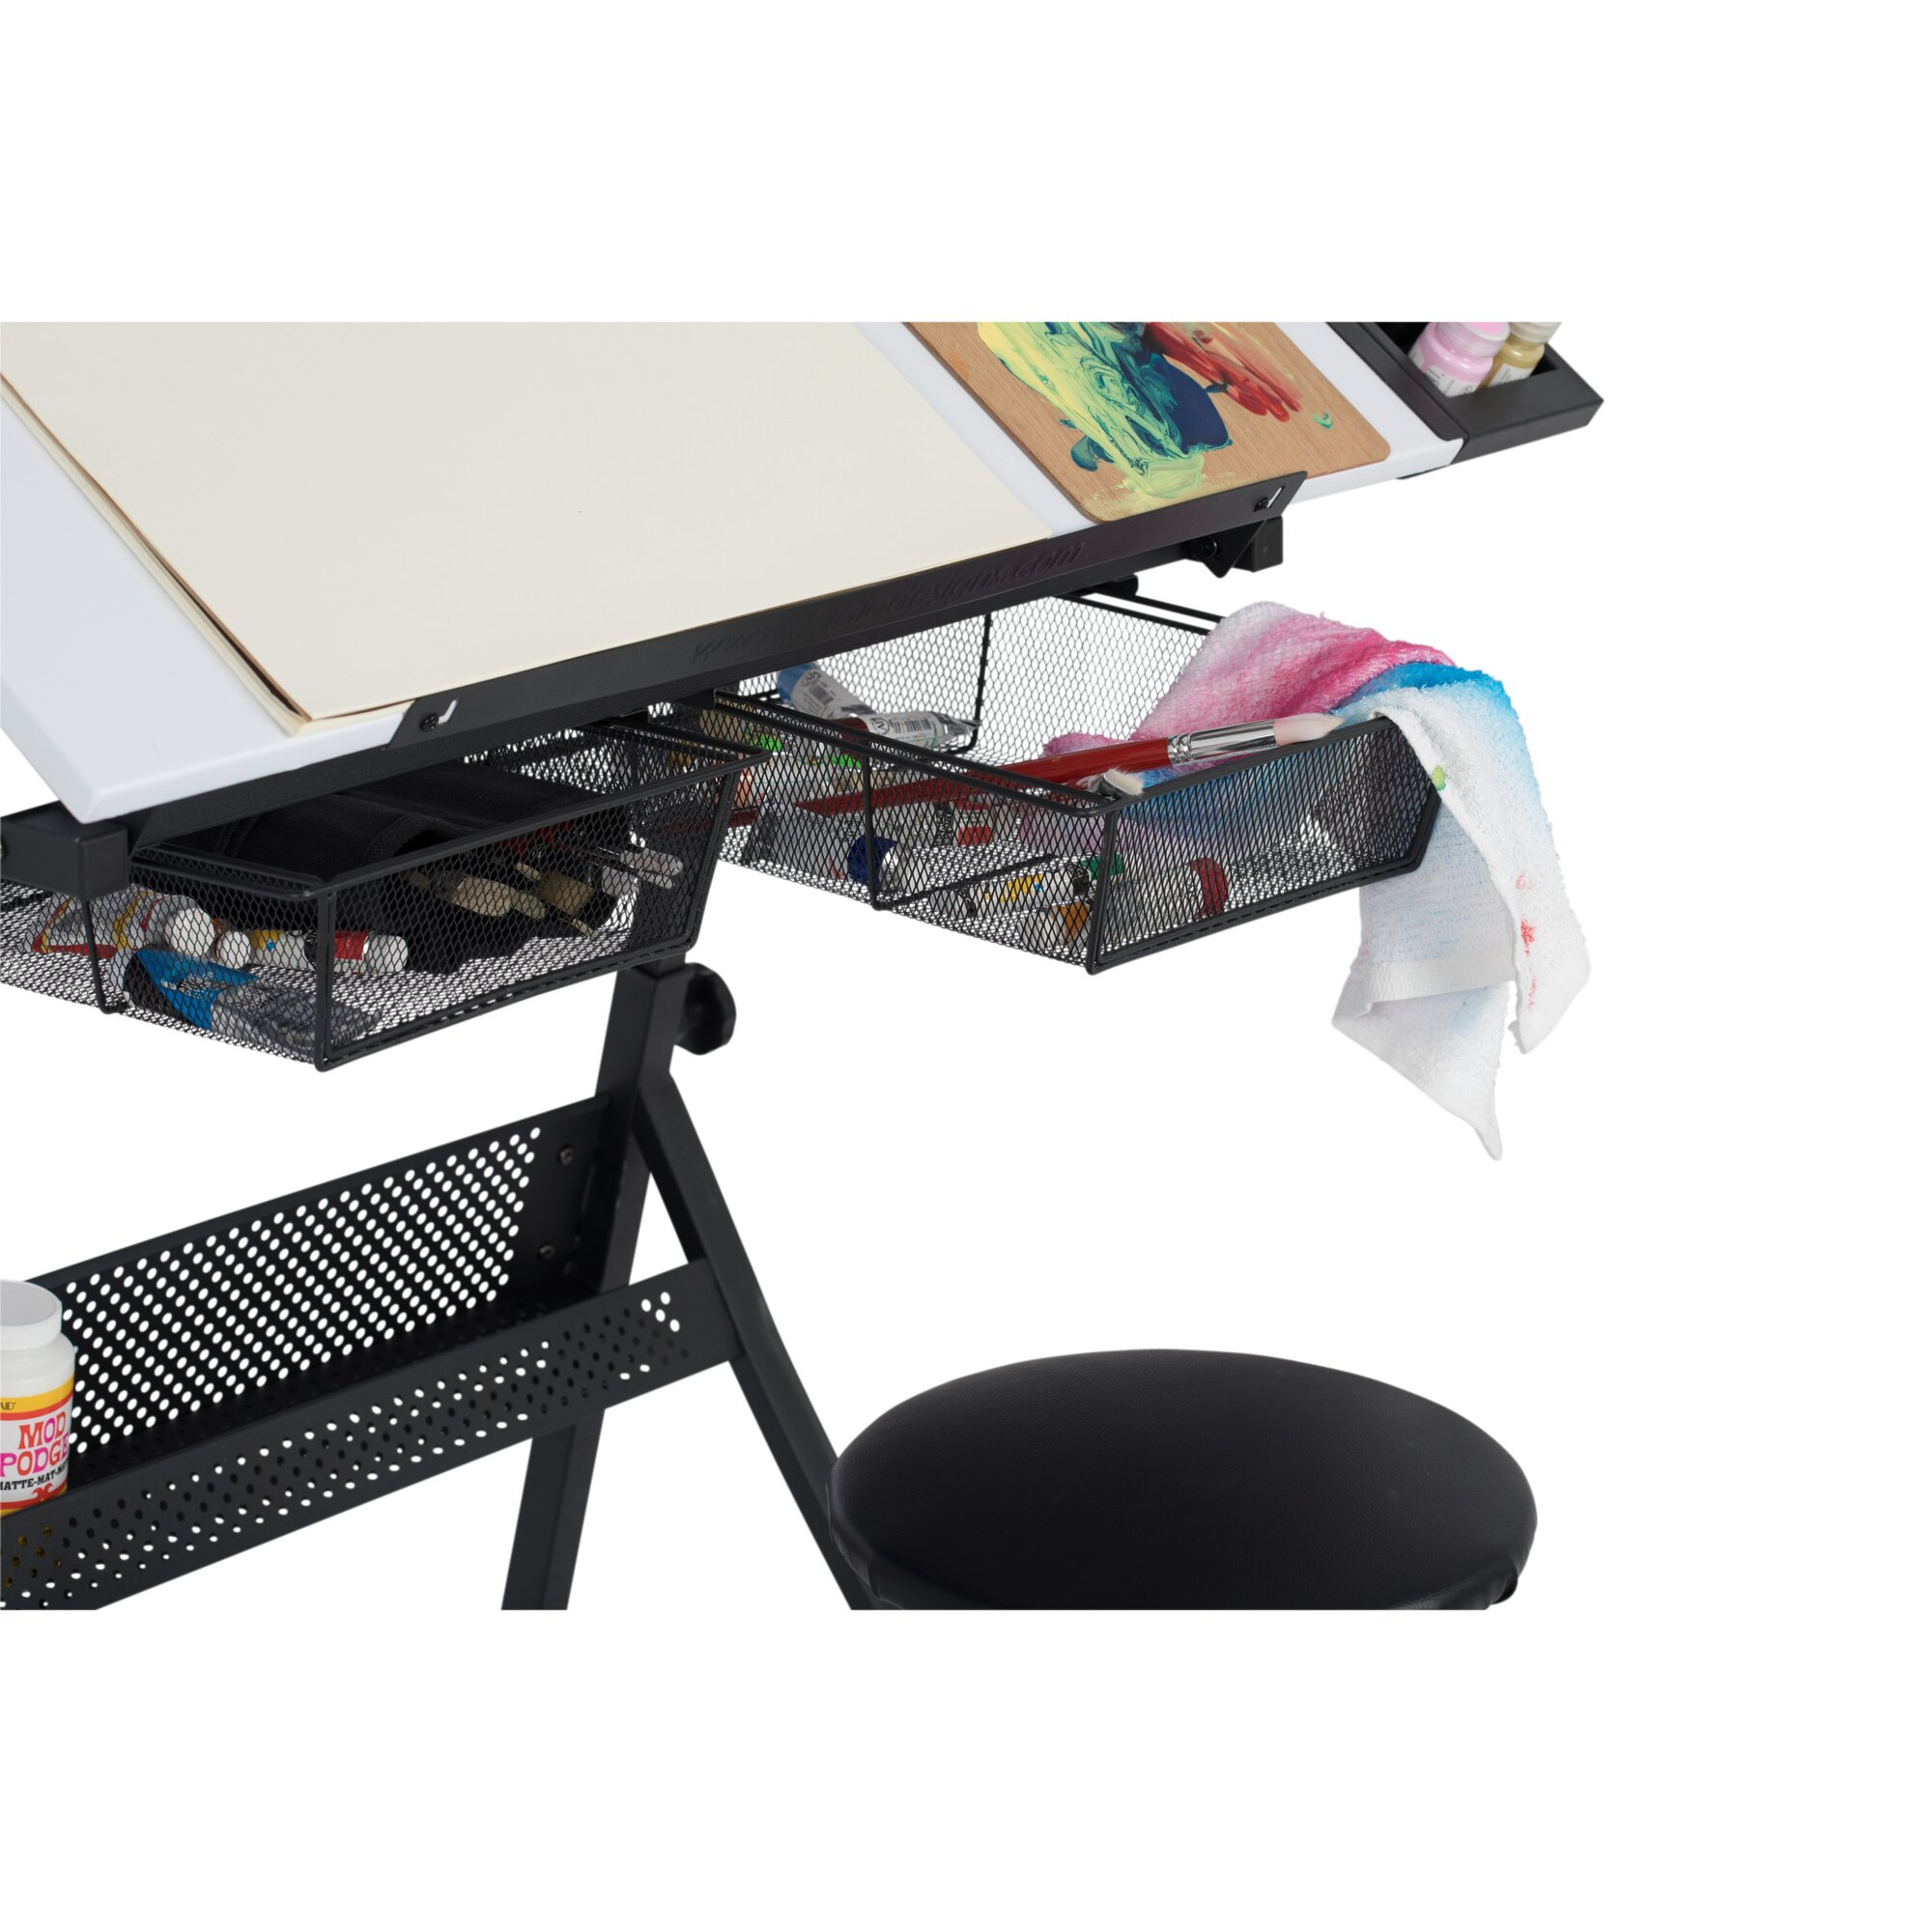 Studio designs fusion craft leaning ladder desk table and for Kids craft table canada